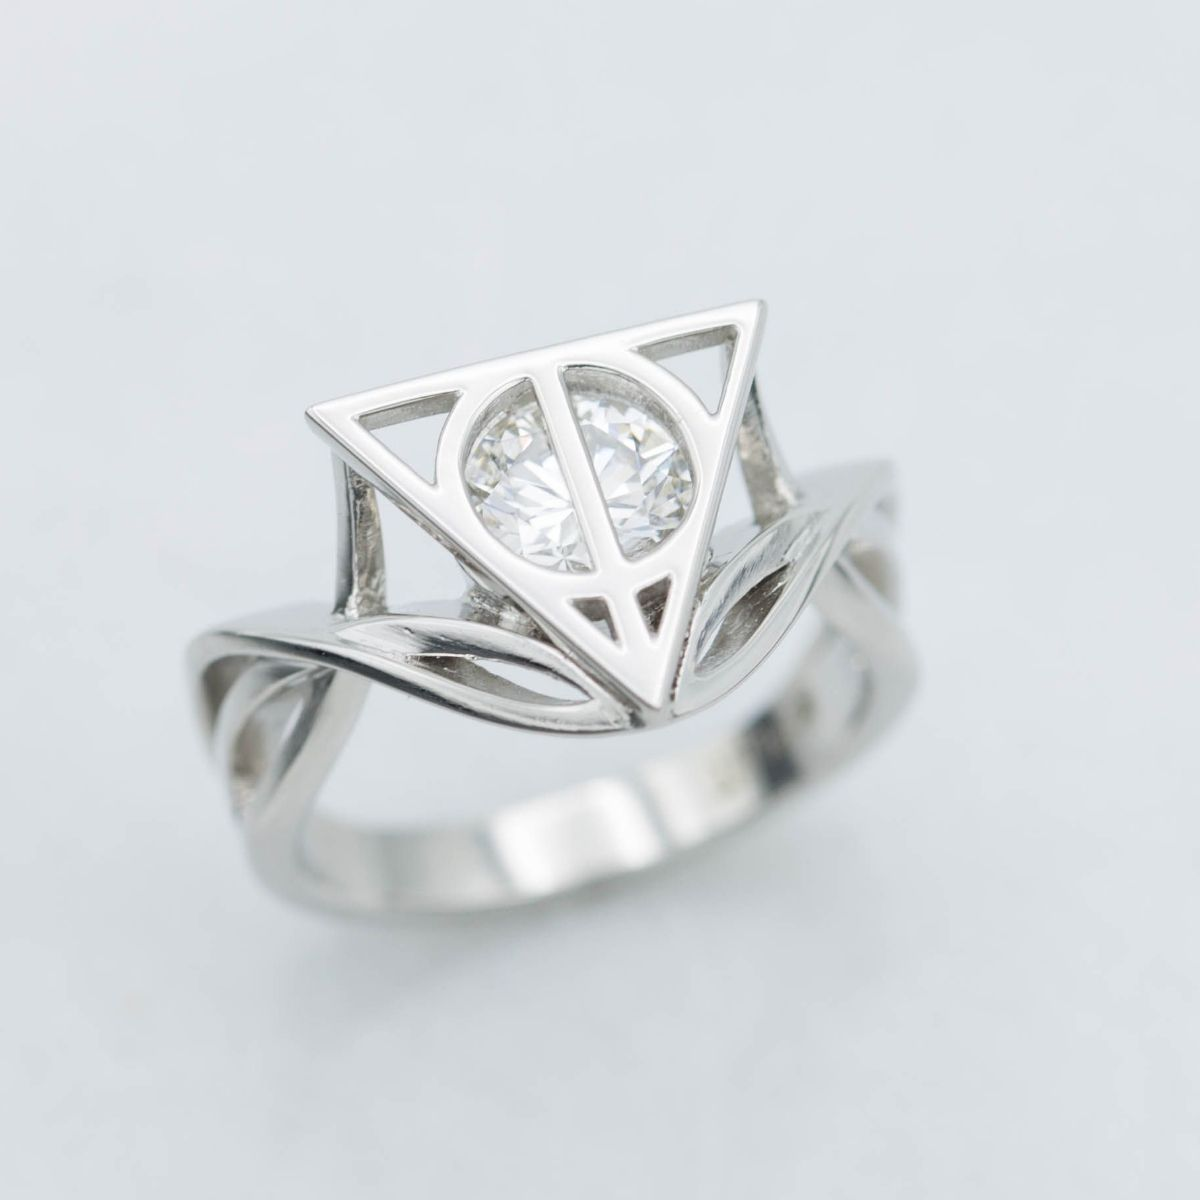 The Delicate Vining Platinum Strands Of This Harry Potter Inspired Engagement Ring Balance Bold Face Symbol Ly Hallows